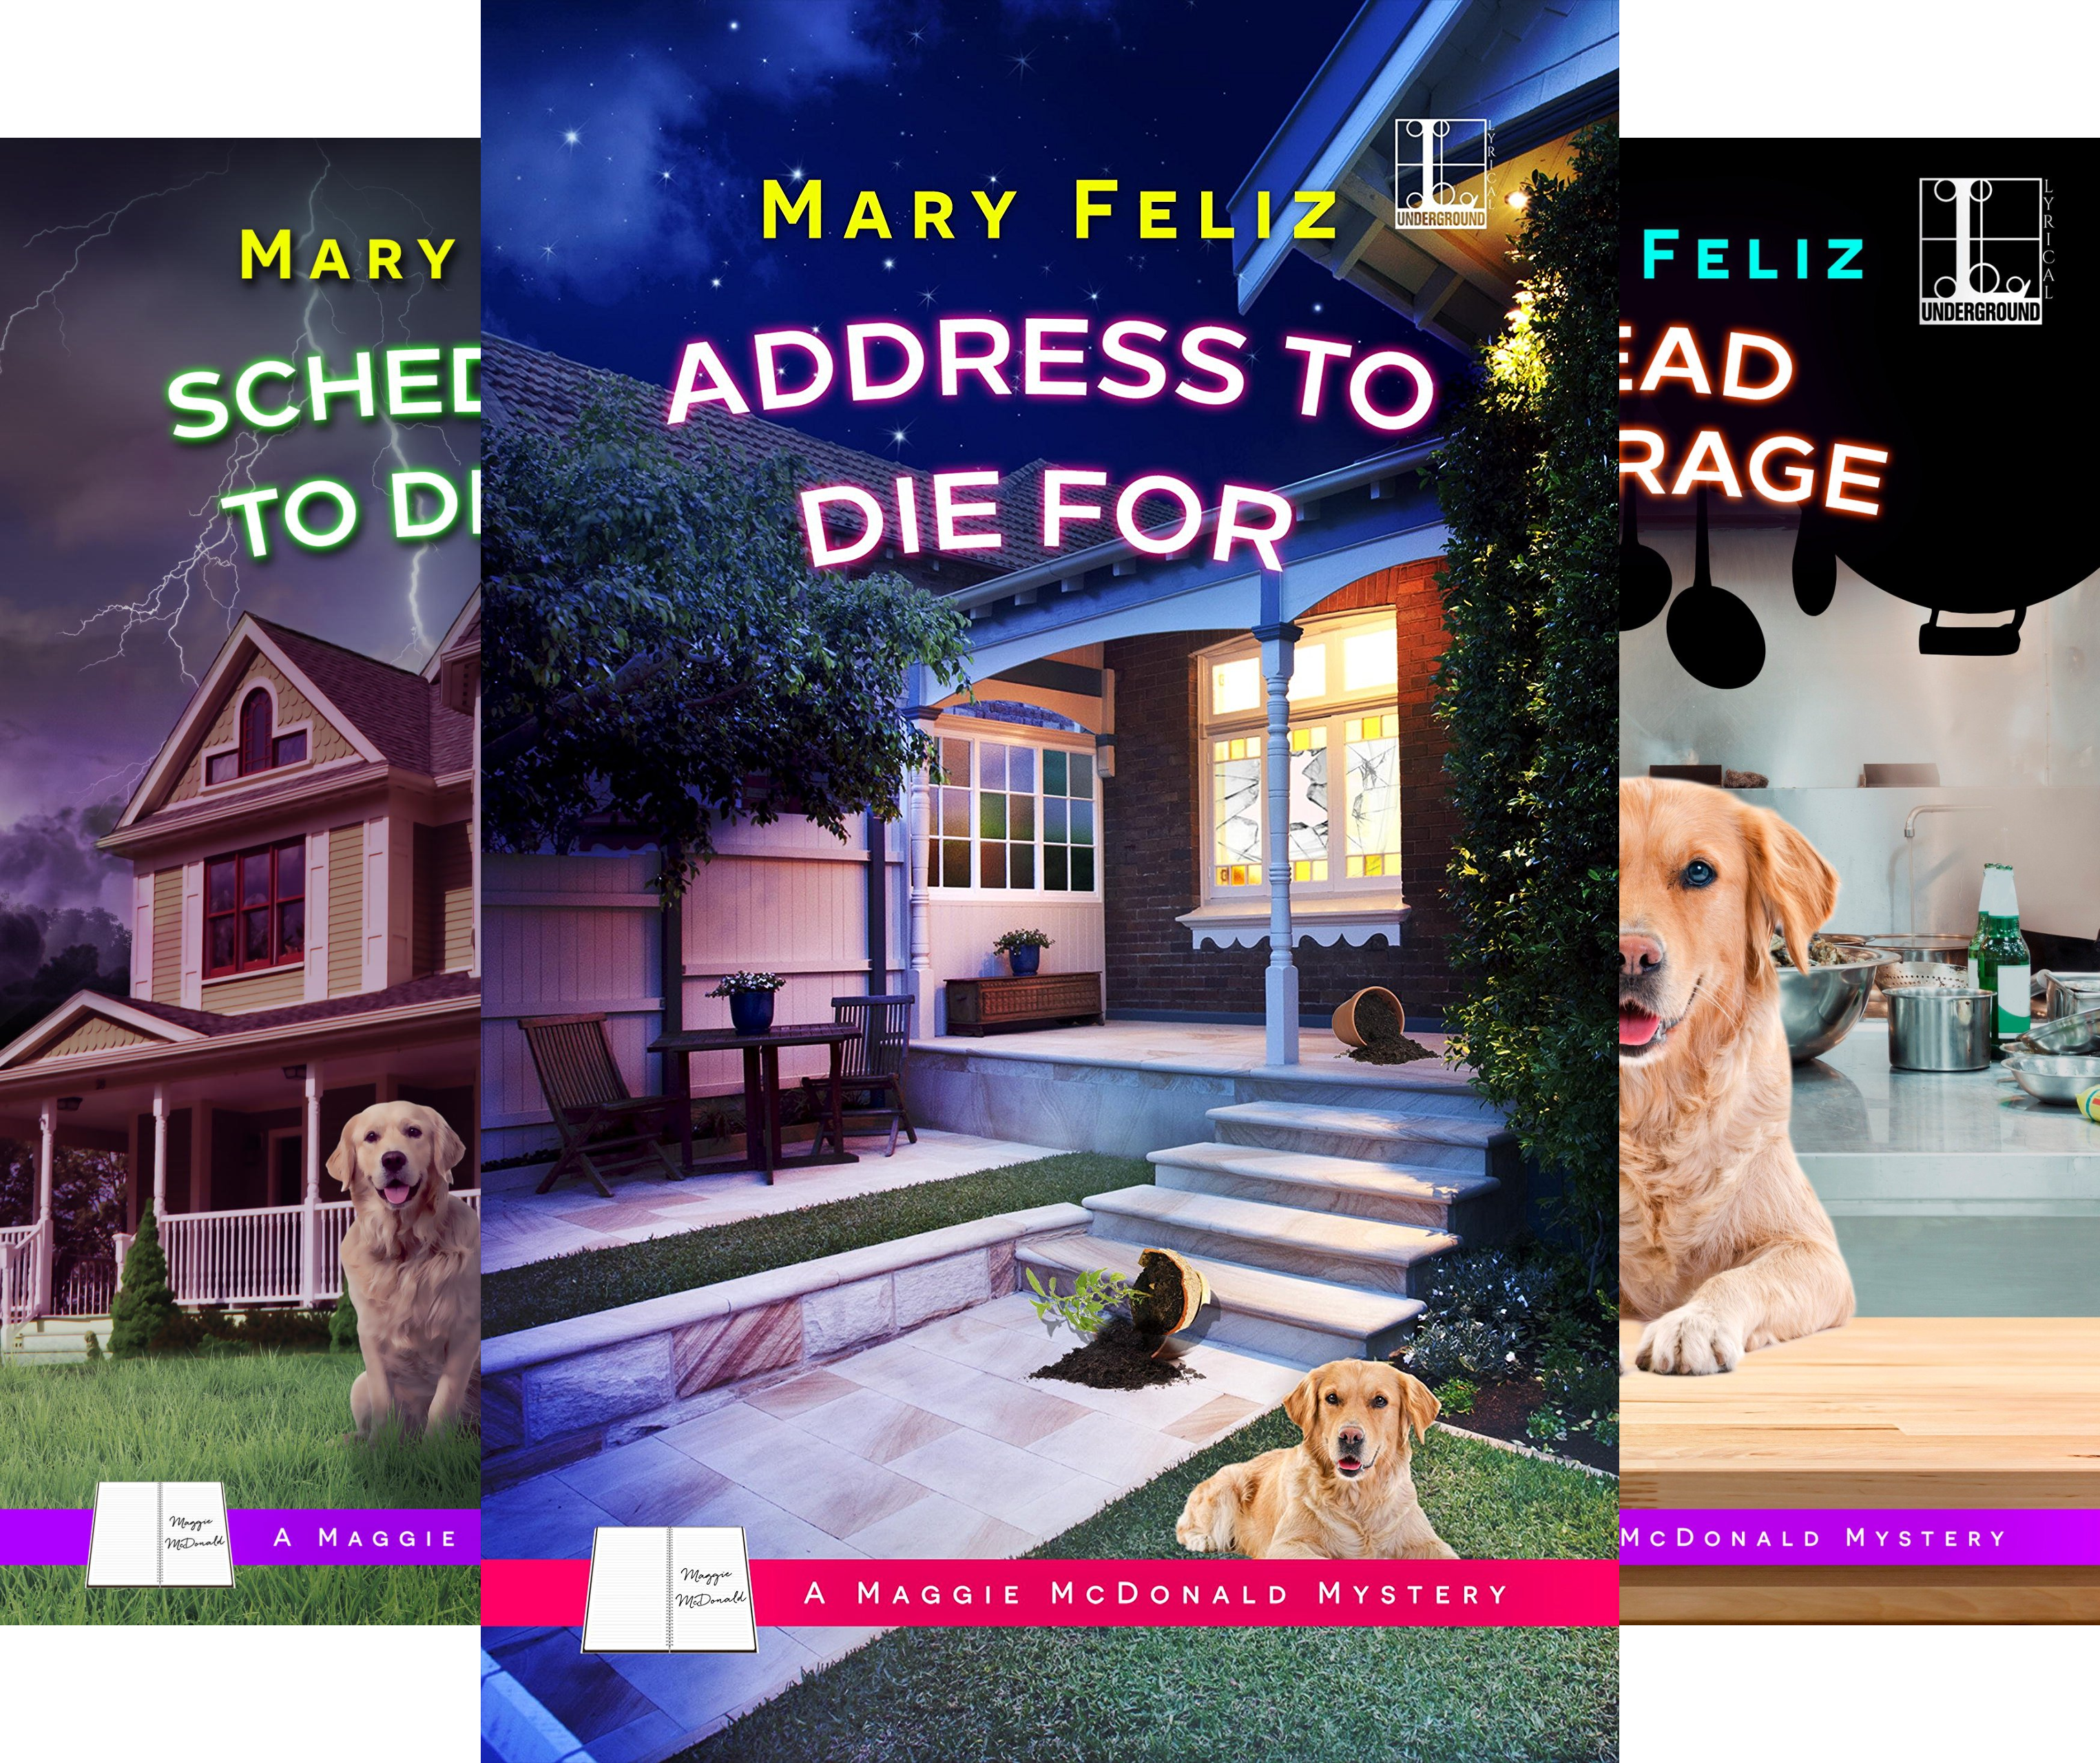 A Maggie McDonald Mystery (4 Book Series)